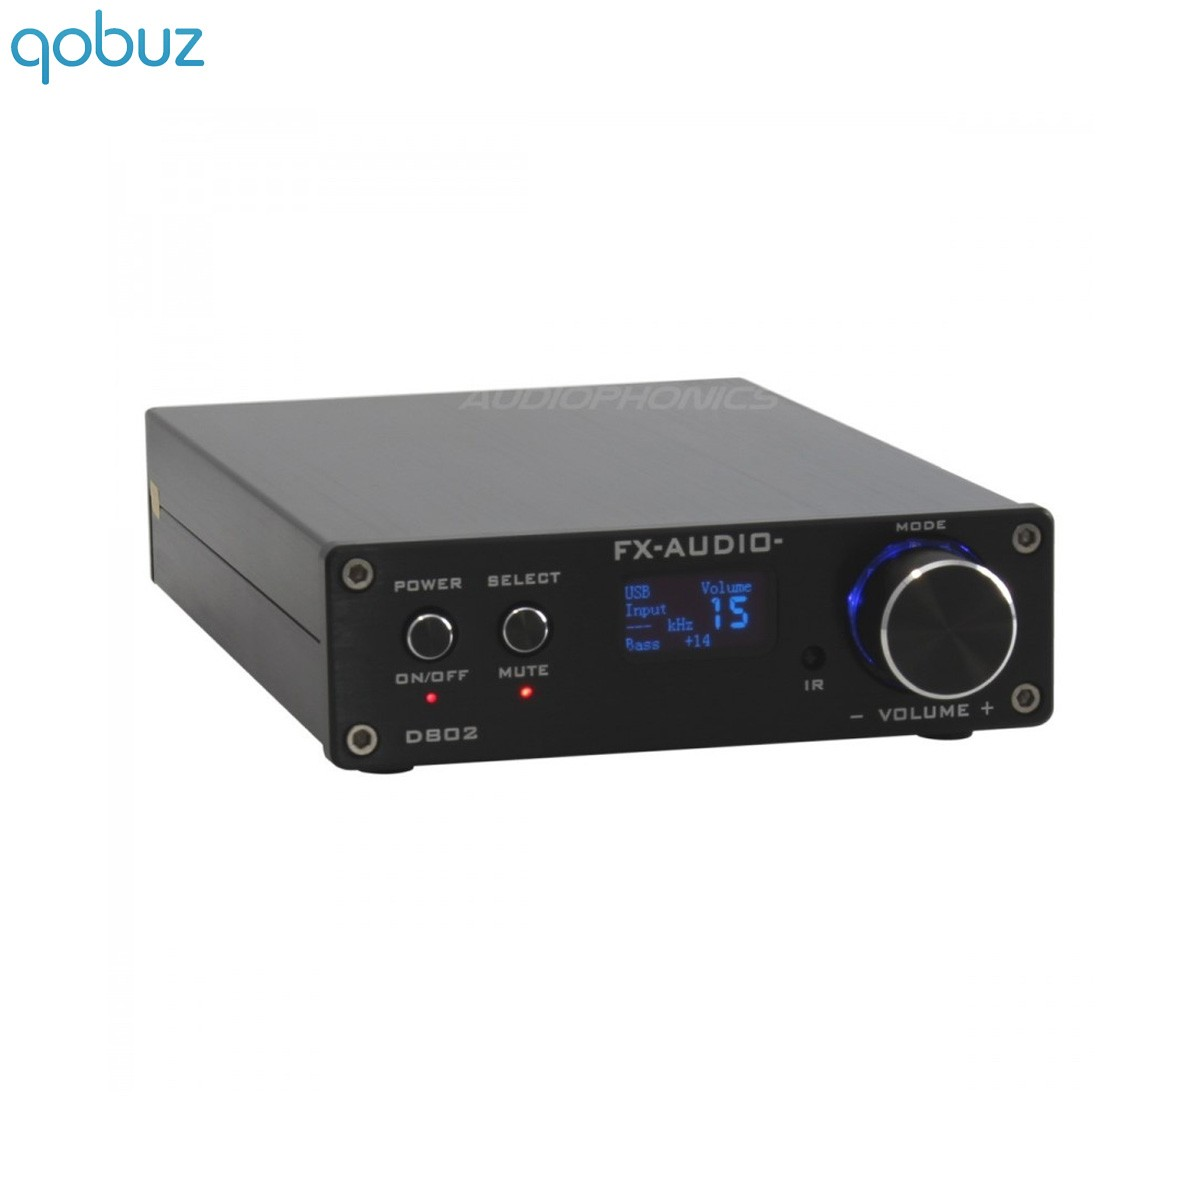 FX-AUDIO D802 Digital Amplifier STA326 Class D stereo 2x50W / 8 Ohm Black